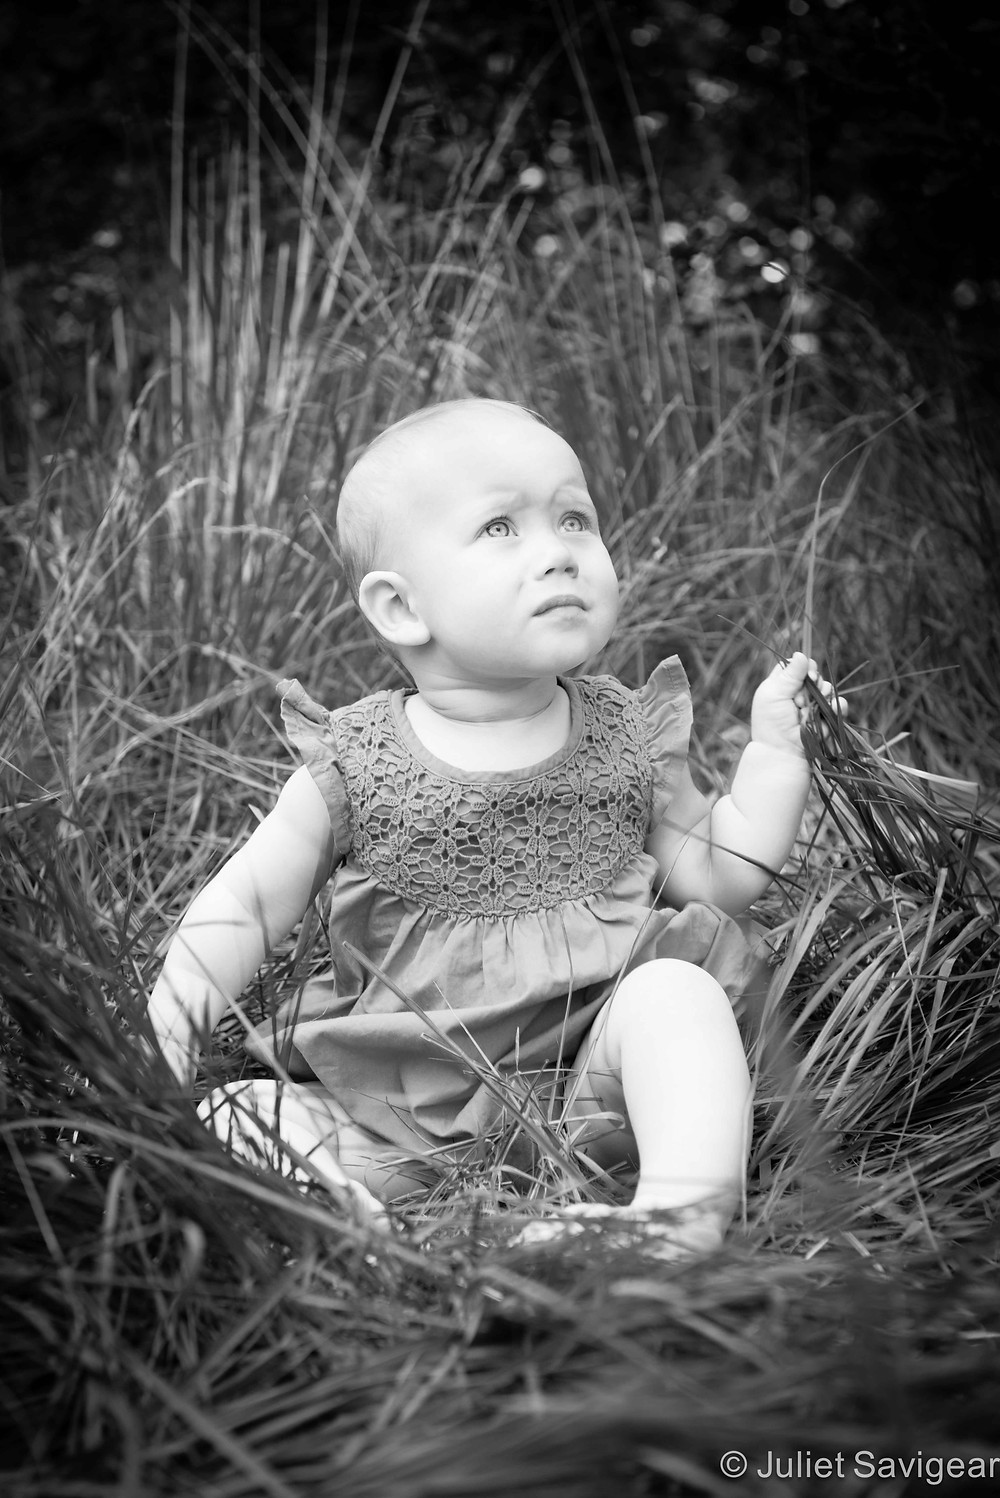 In The Grass - Baby Photography, Wimbledon